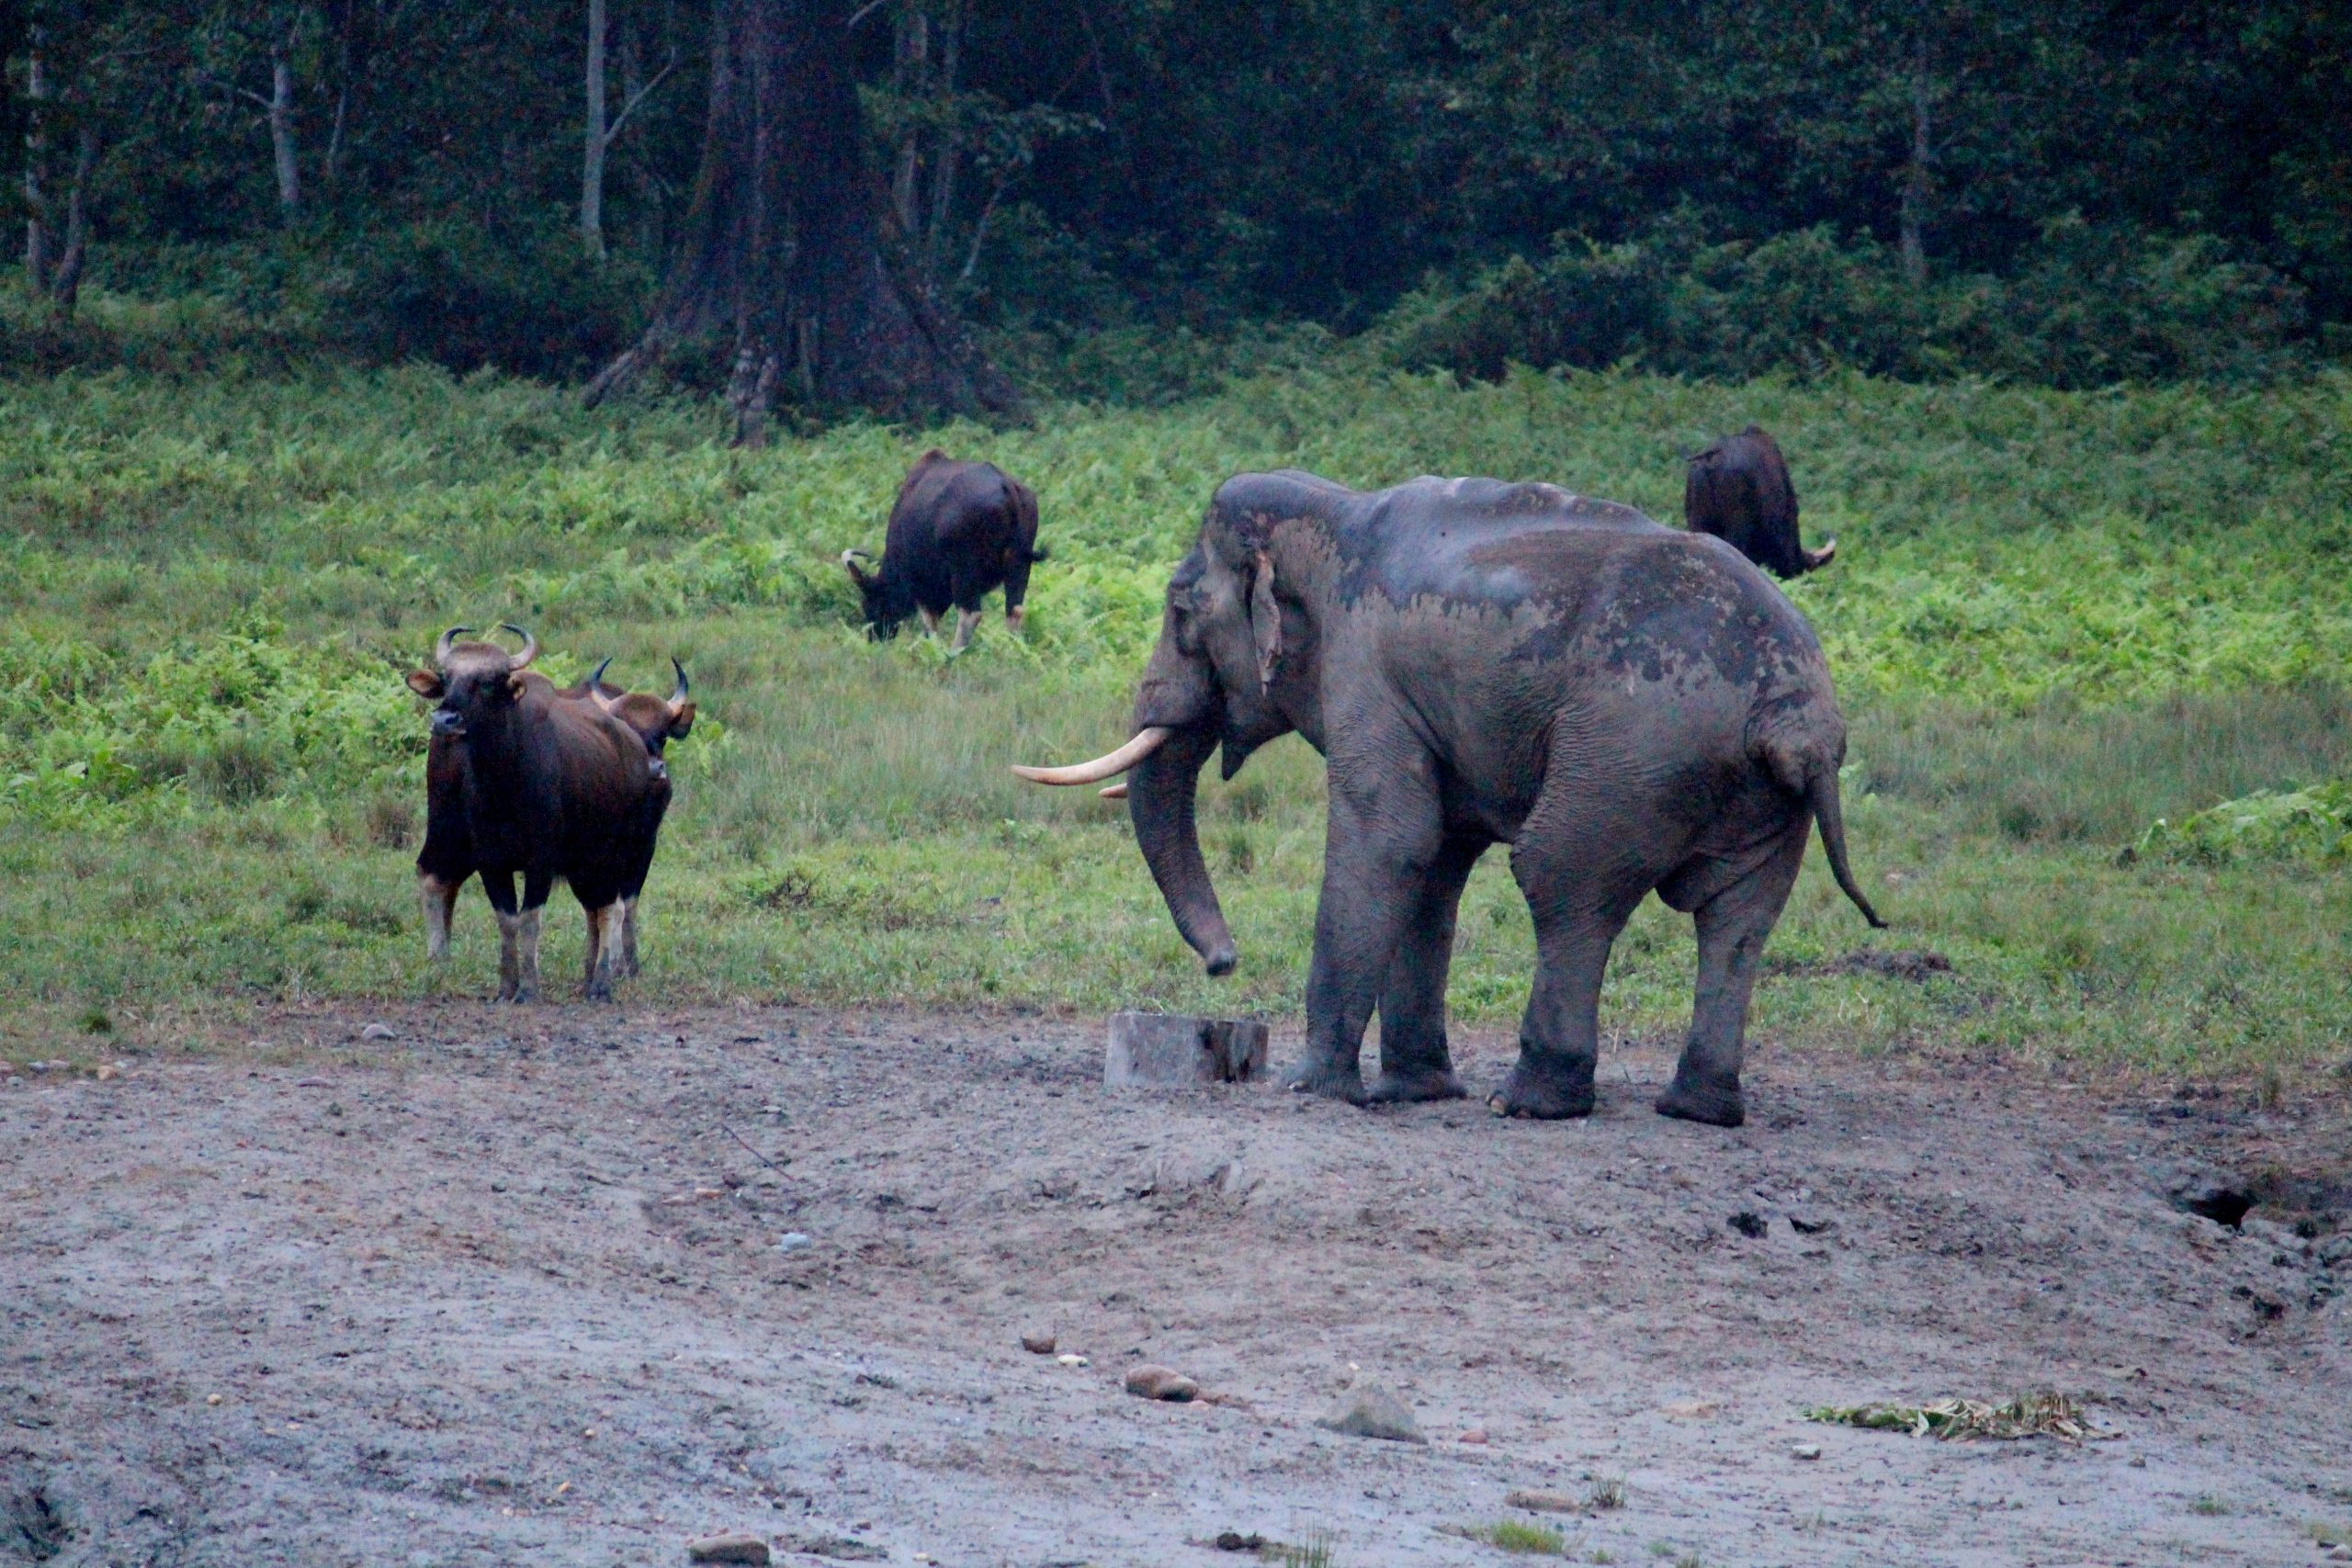 Spotting One-Horned Rhinos in Jaldapara Wildlife Sanctuary elephants